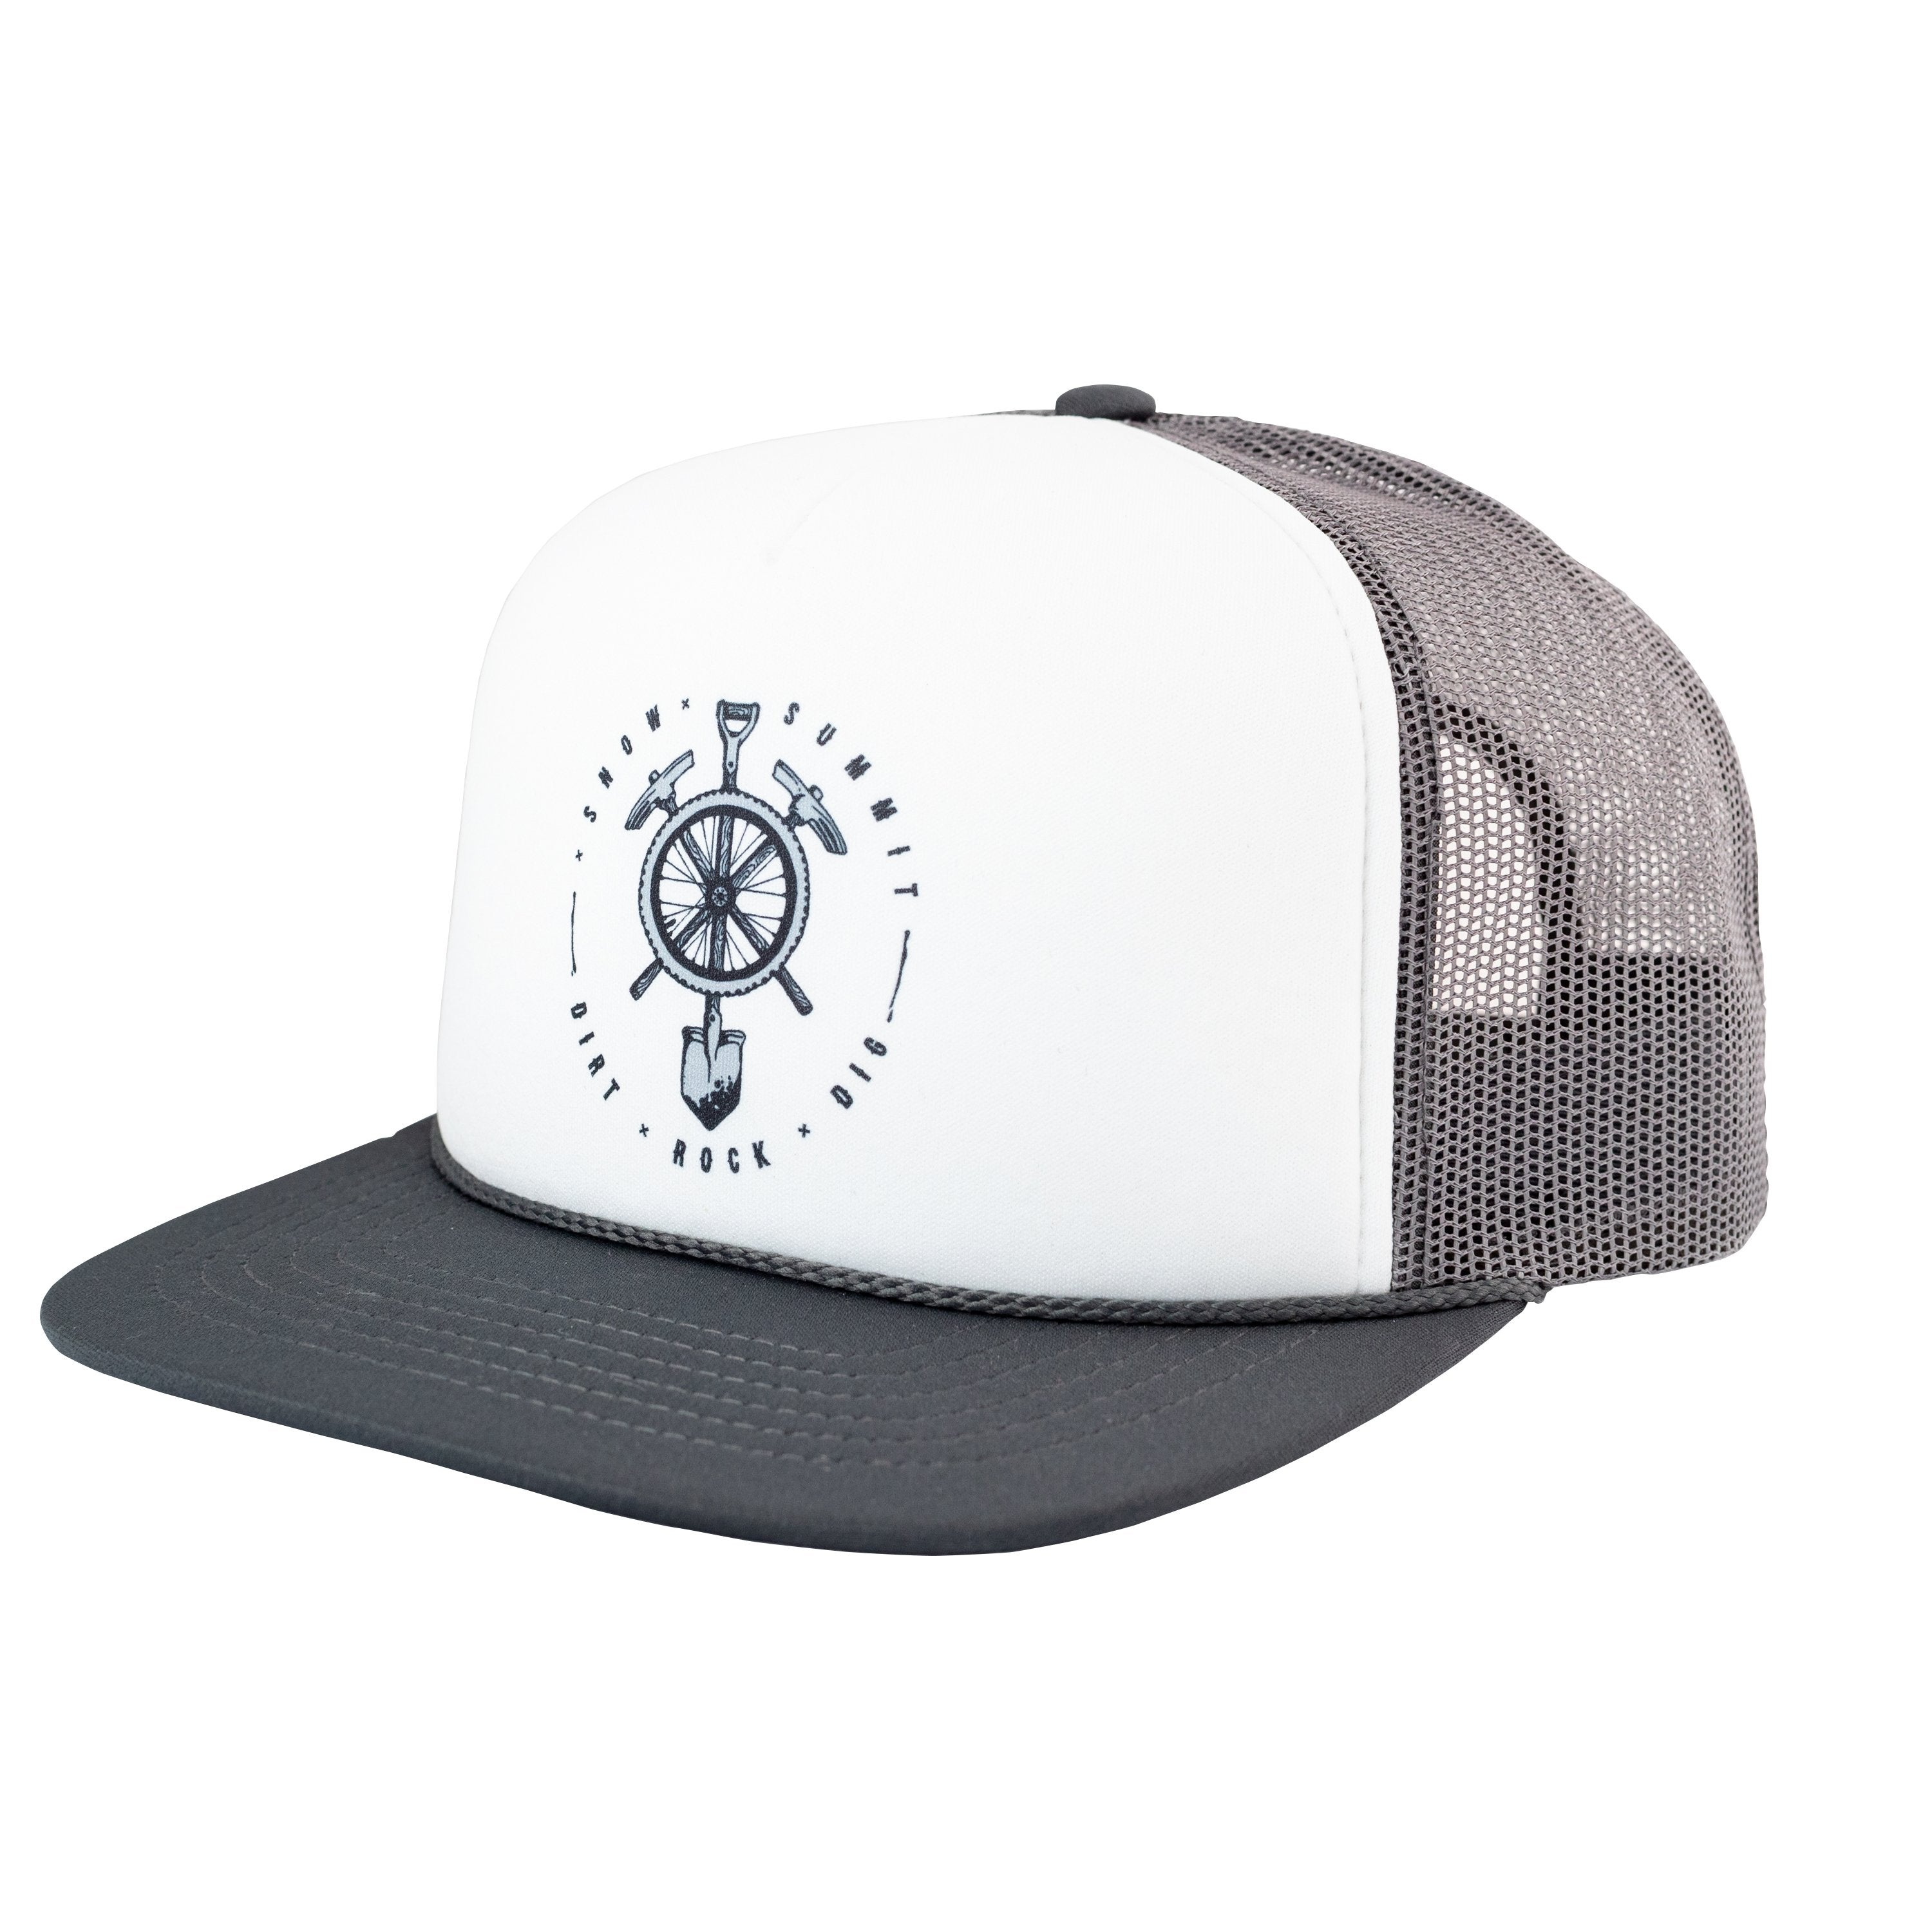 White and Grey Snow Summit branded trucker hate